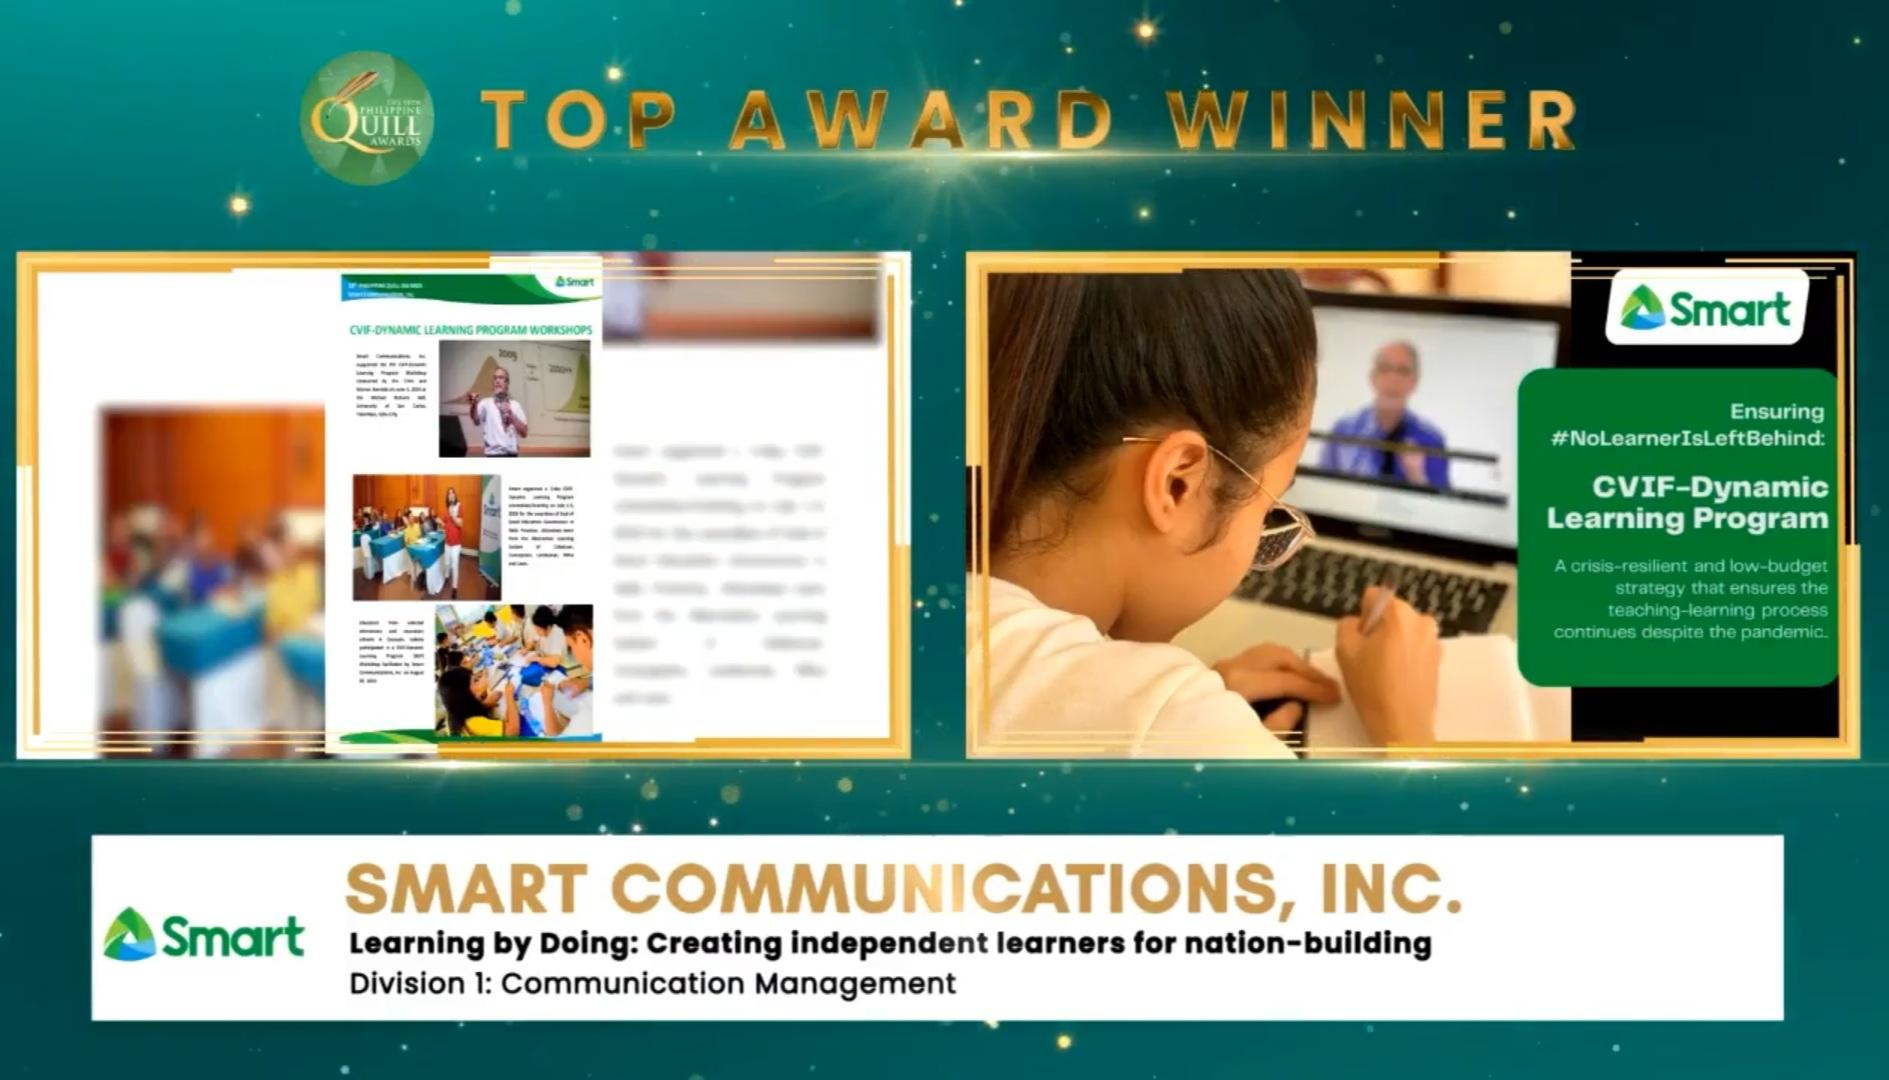 PLDT and Smart 18th Ph Quill Awards - The Smart-backed CVIF Dynamic Learning Program was named Top Entry for Communication Management